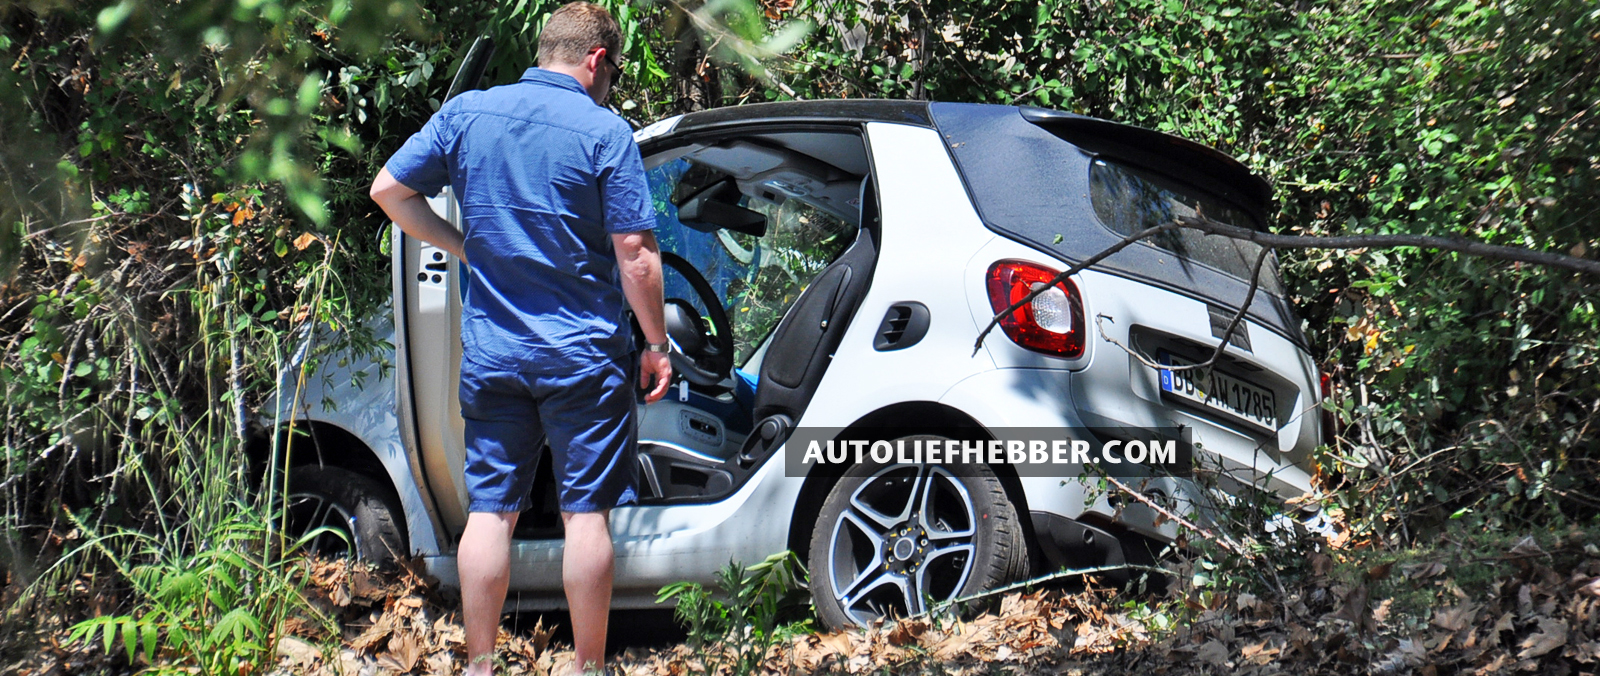 Prototype van Smart ForTwo cabriolet crashed